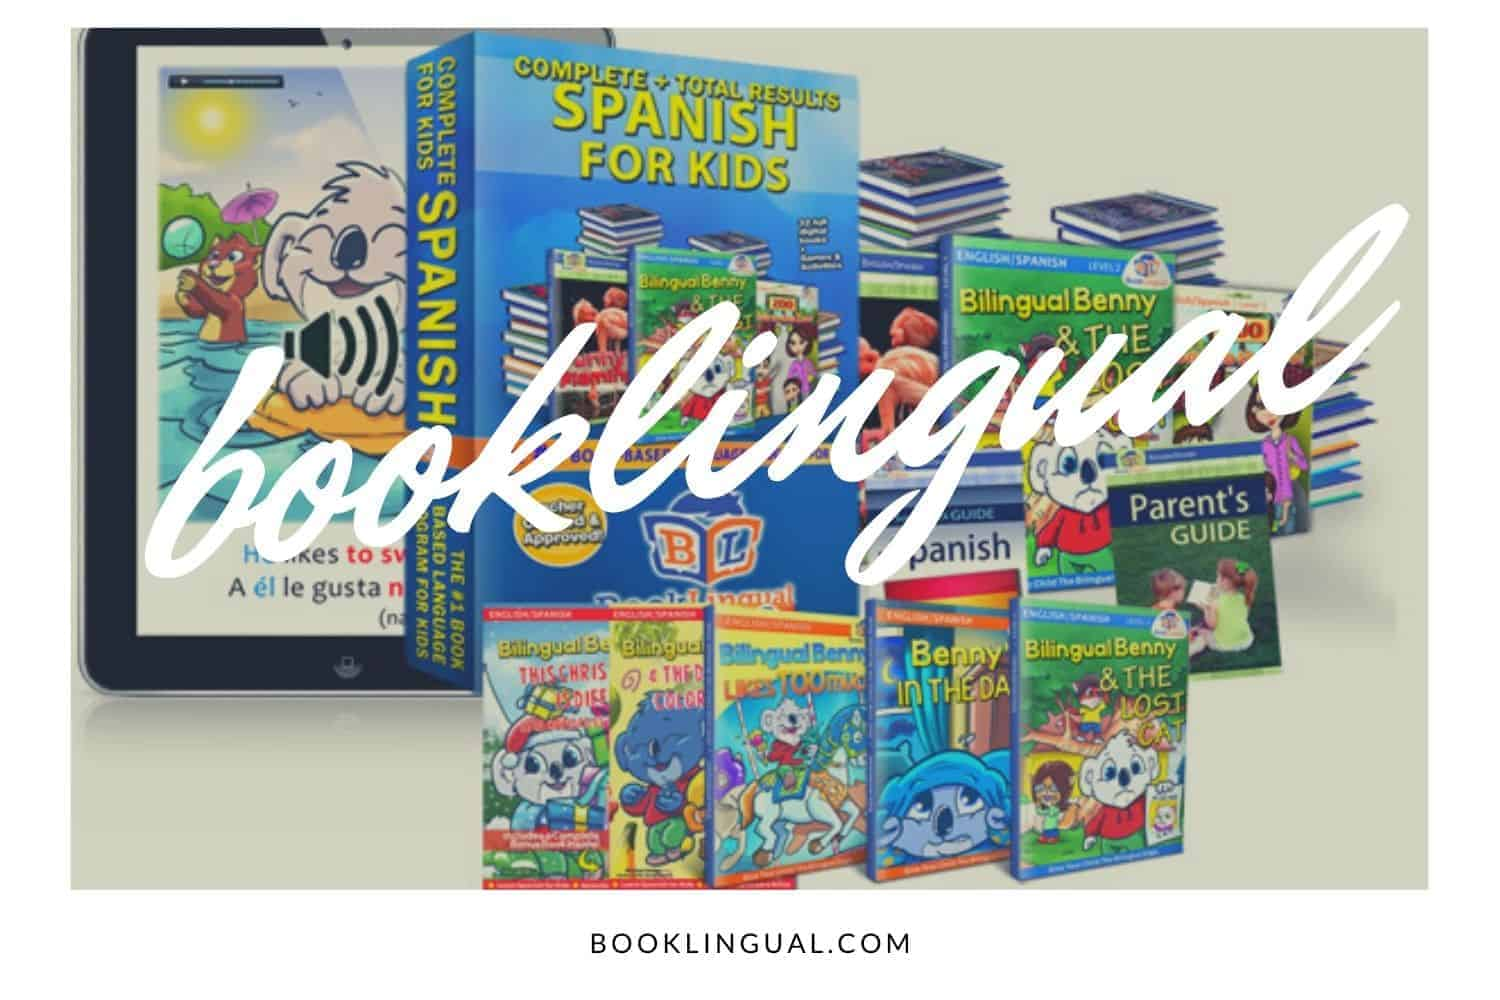 BookLingual: Complete Spanish for Kids Learning Set